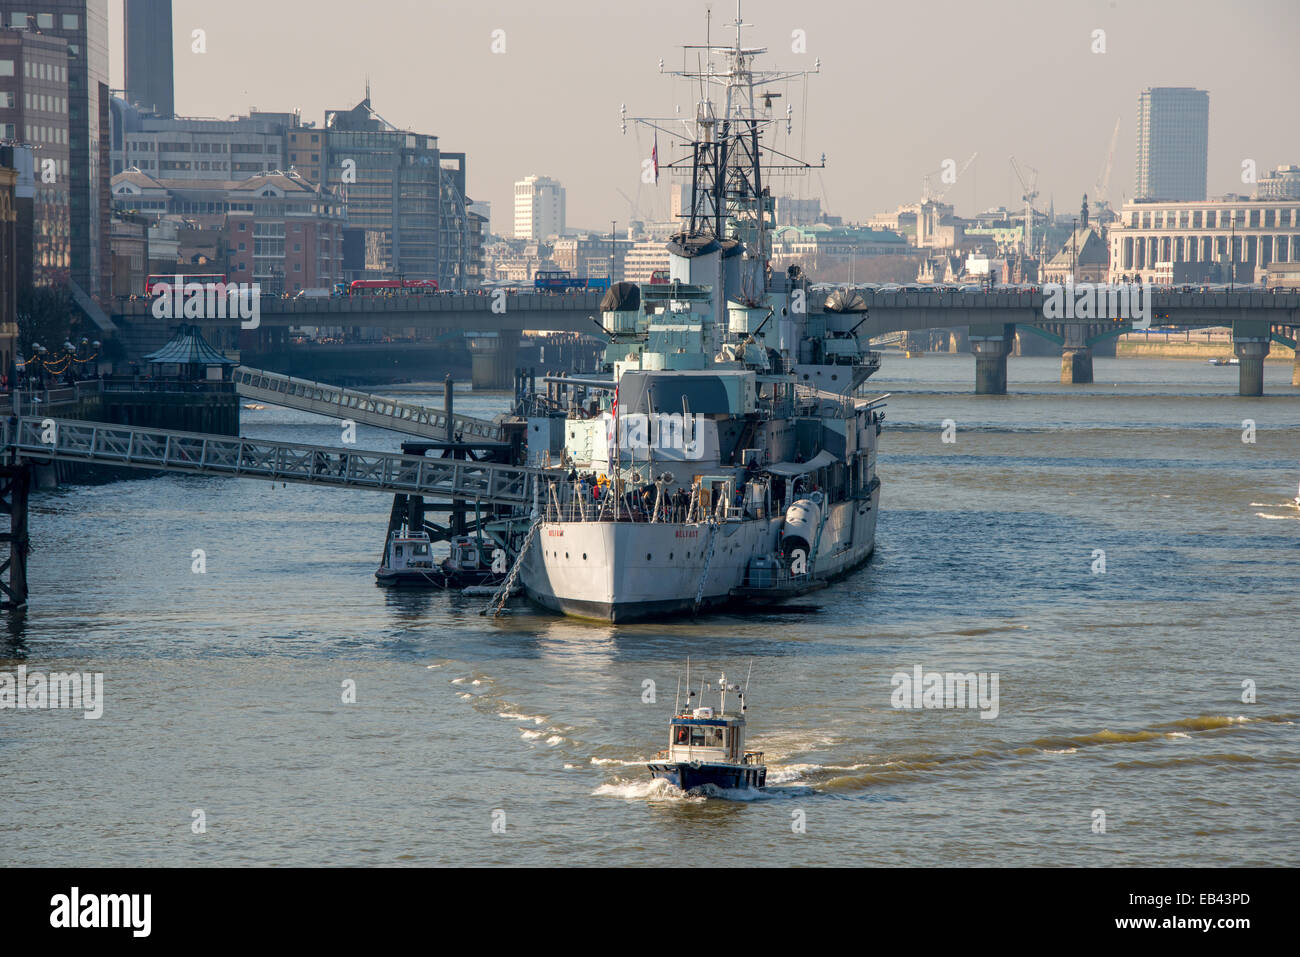 HMS Belfast on the banks of the River Thames, London. - Stock Image